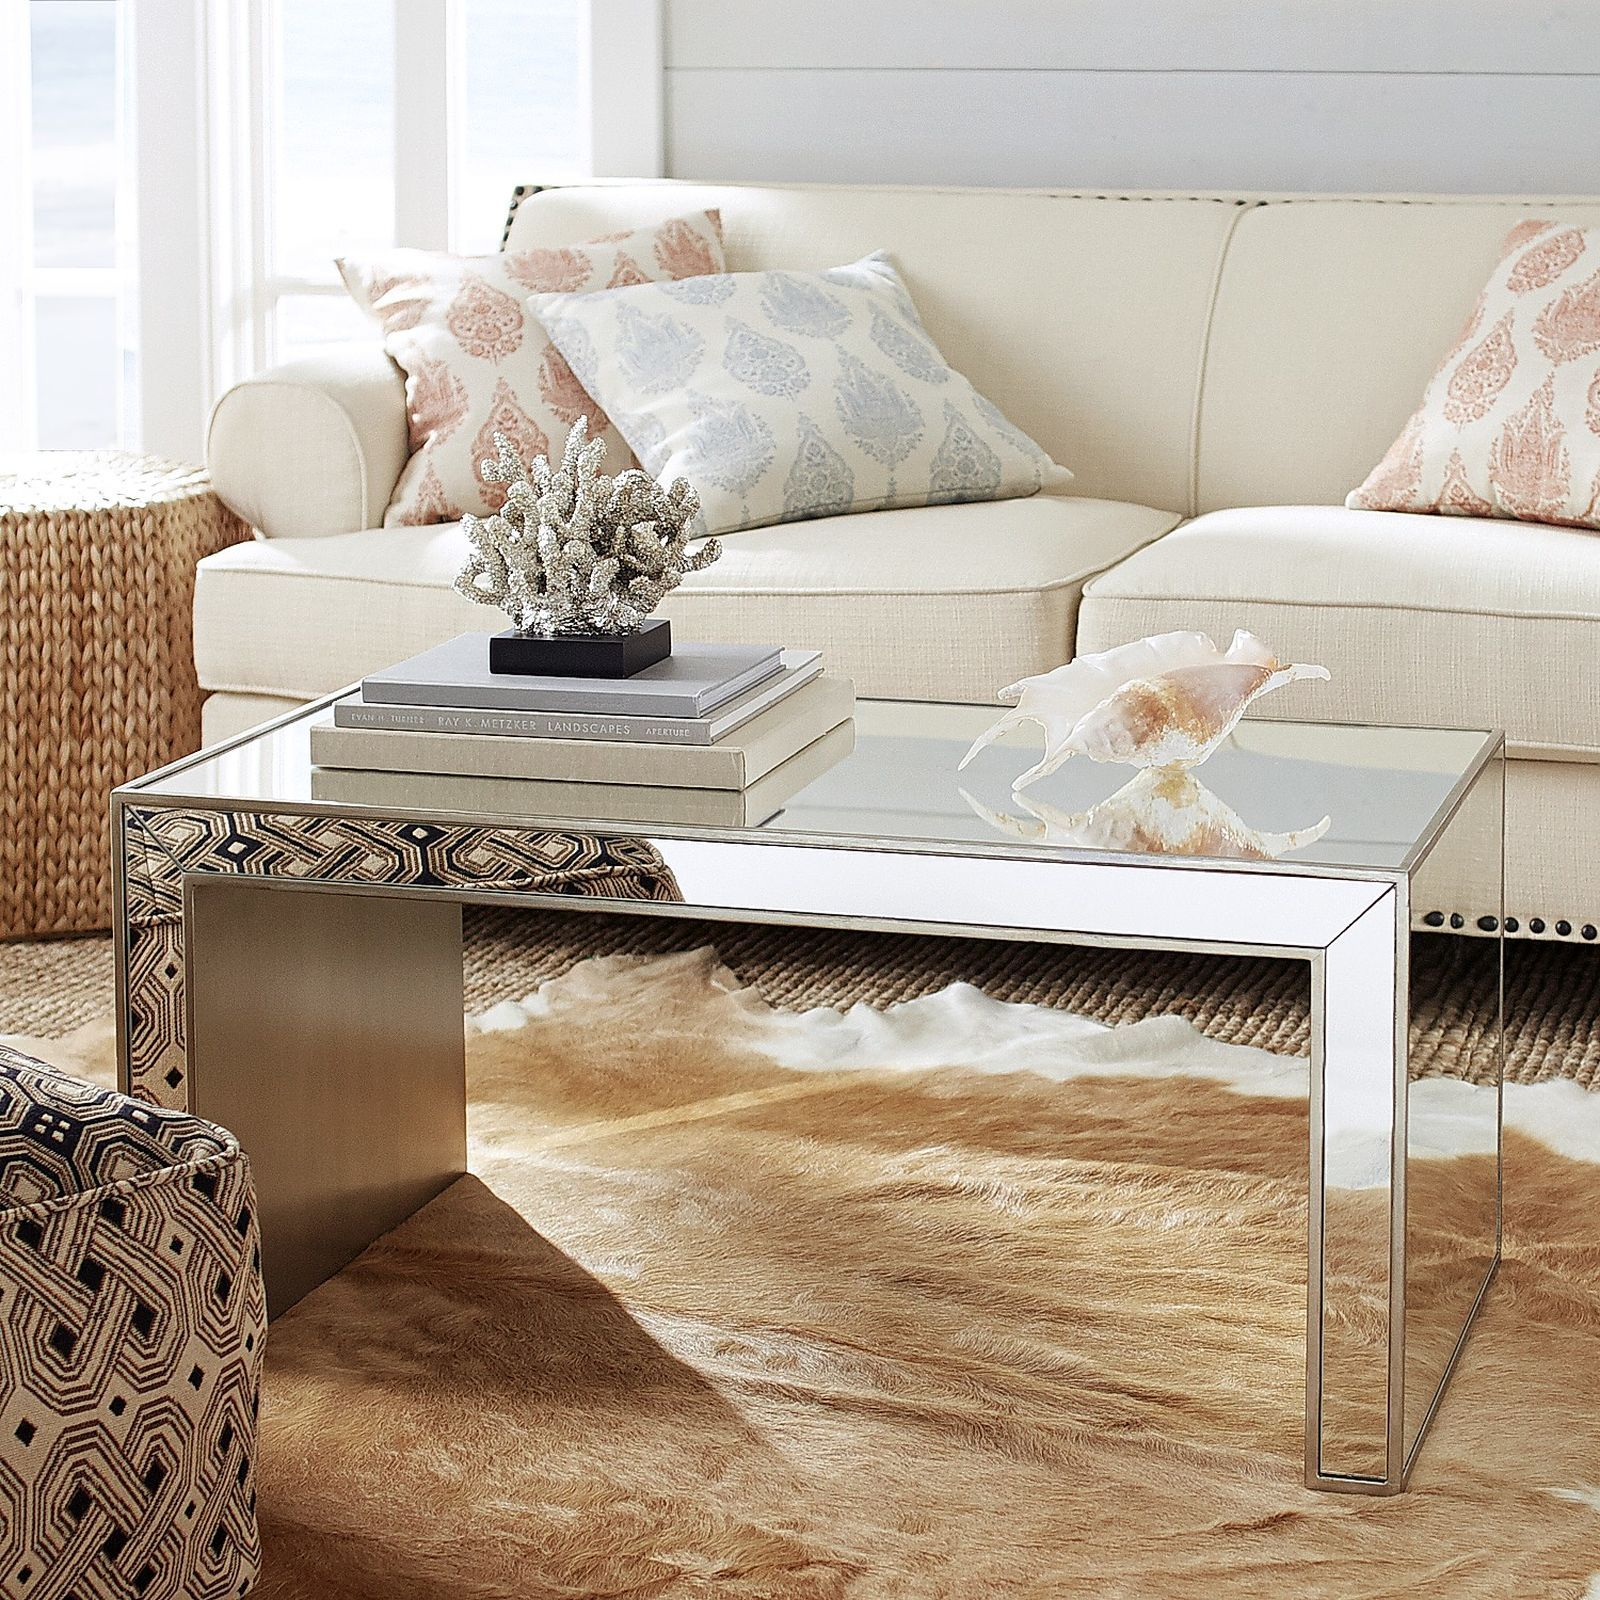 Alexa Mirrored Coffee Table Pier 1 Imports Table Decor Living Room Mirrored Coffee Tables Coffee Table